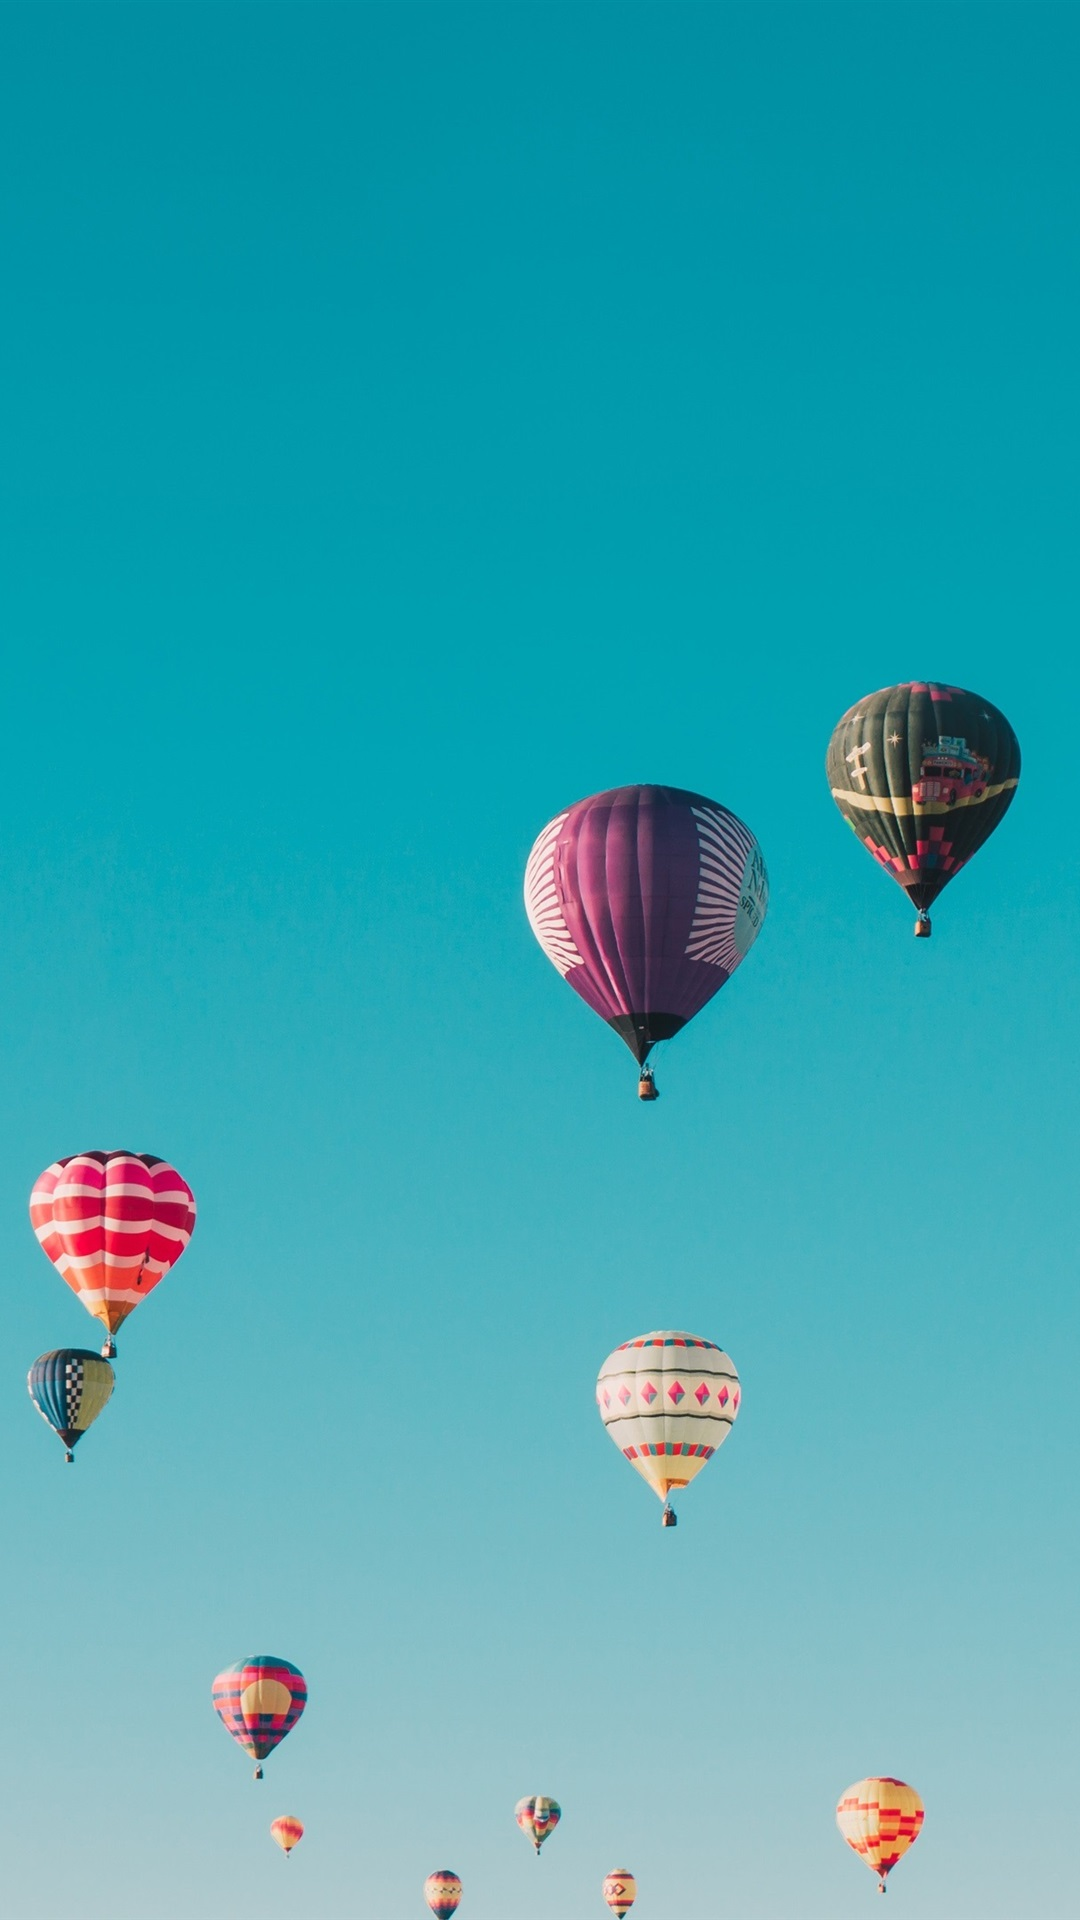 Many Hot Air Balloons Flight Sky Colorful 1080x1920 Iphone